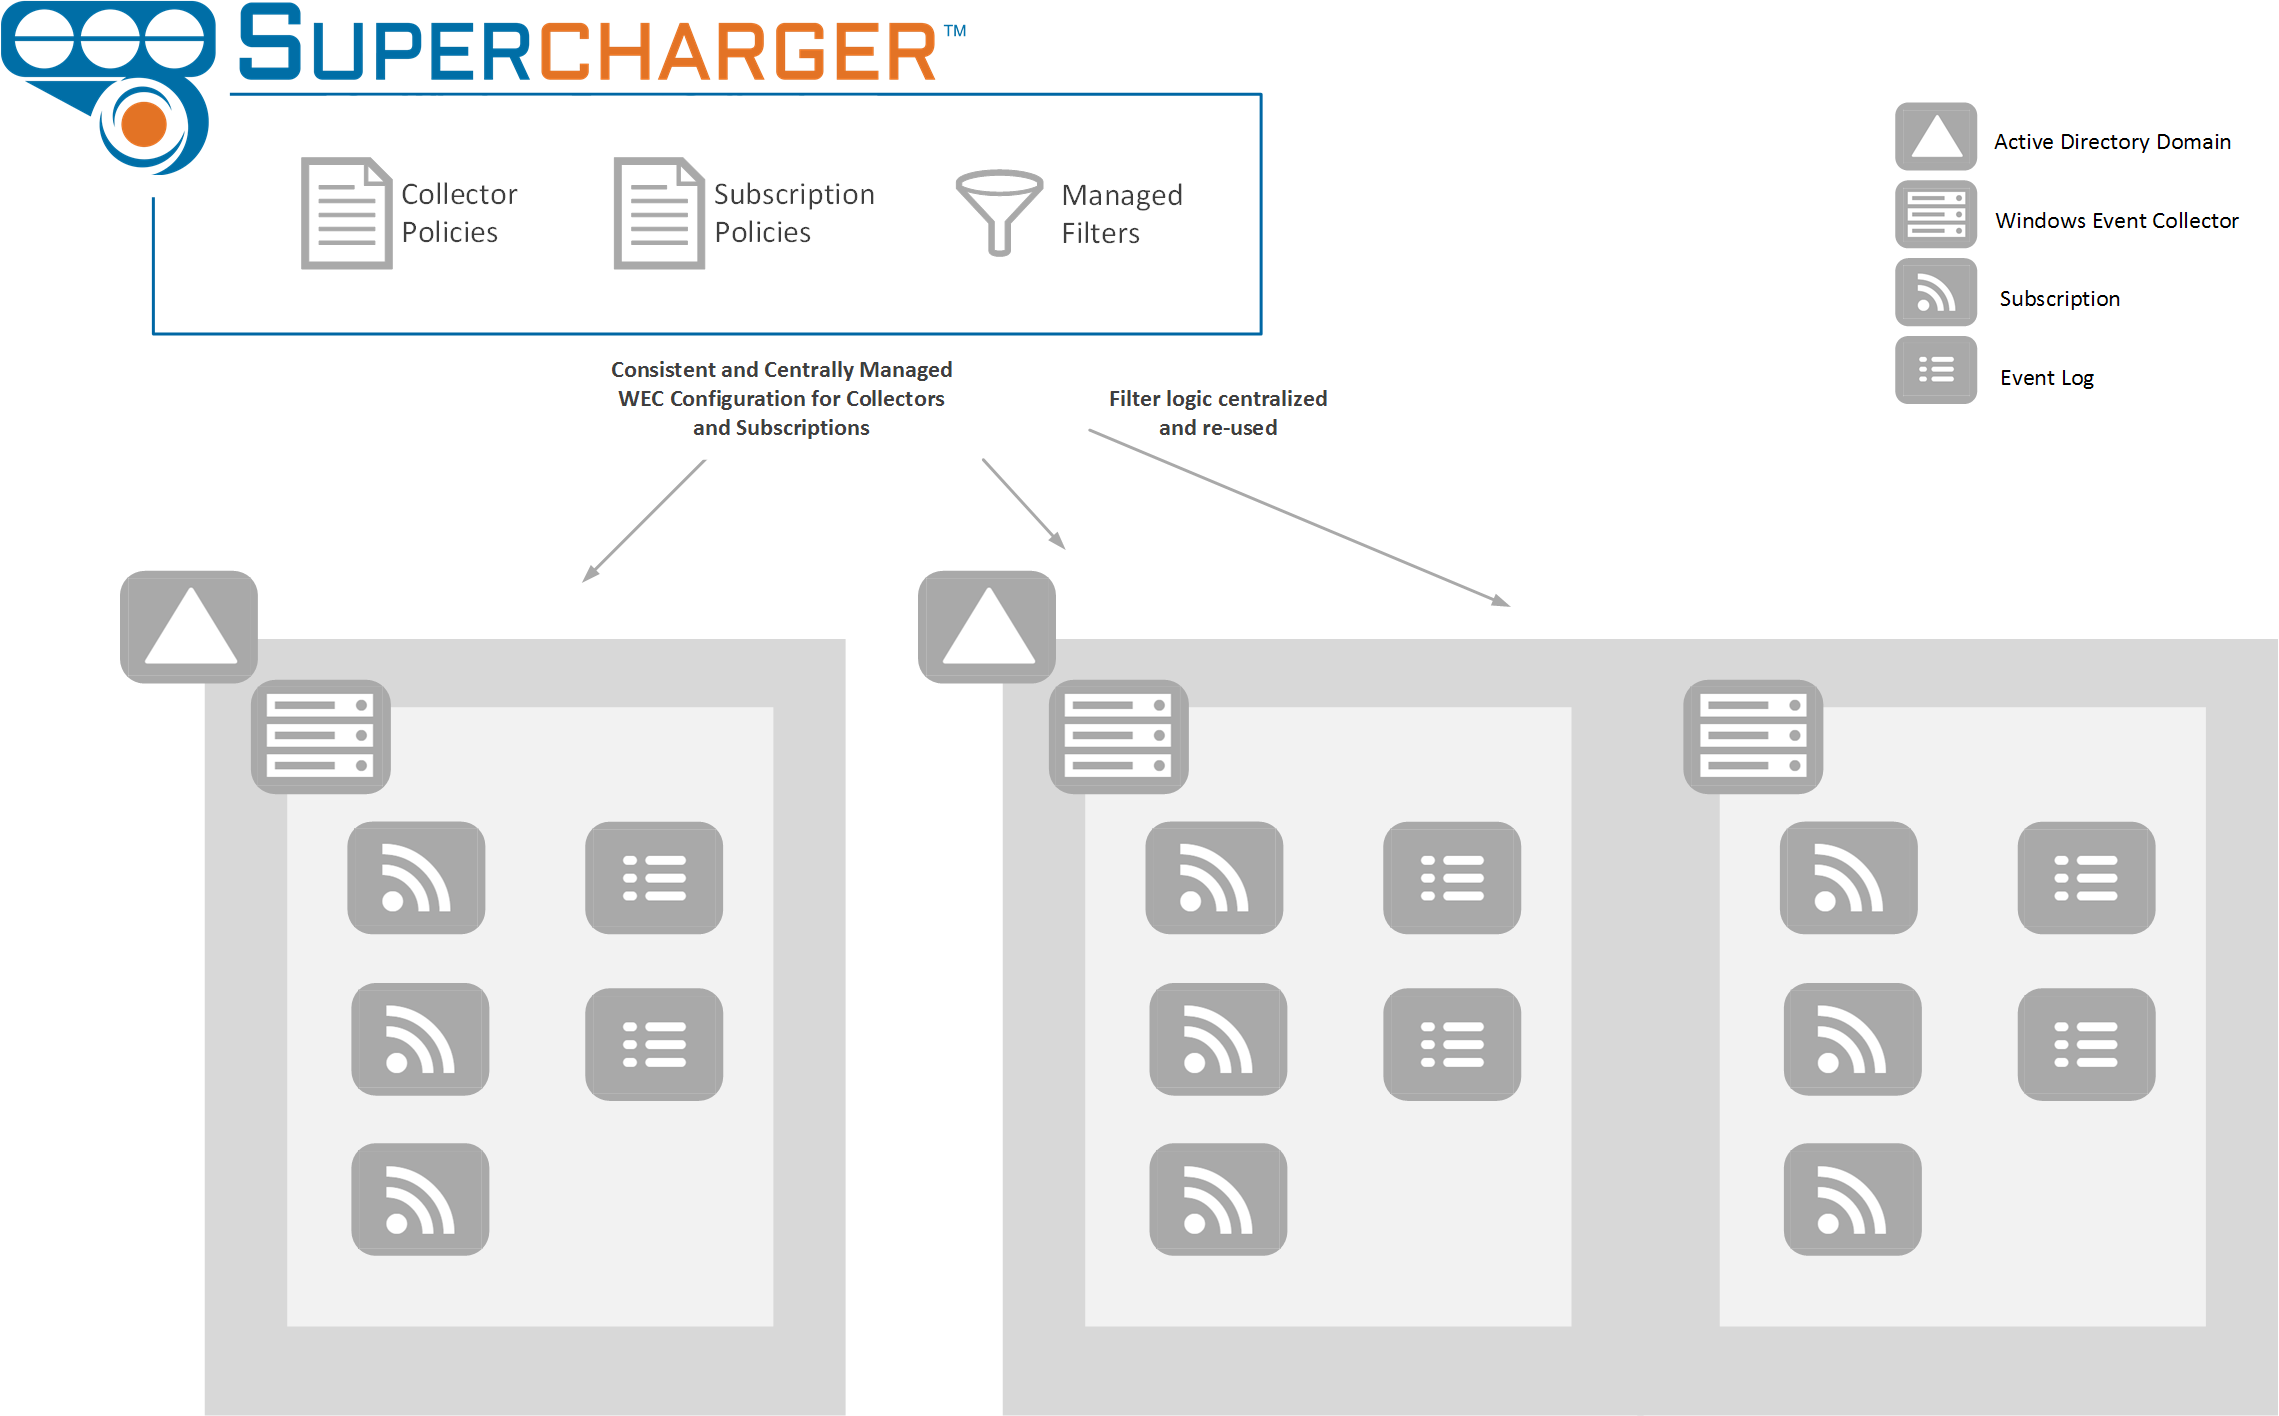 Supercharger for Windows Event Collection